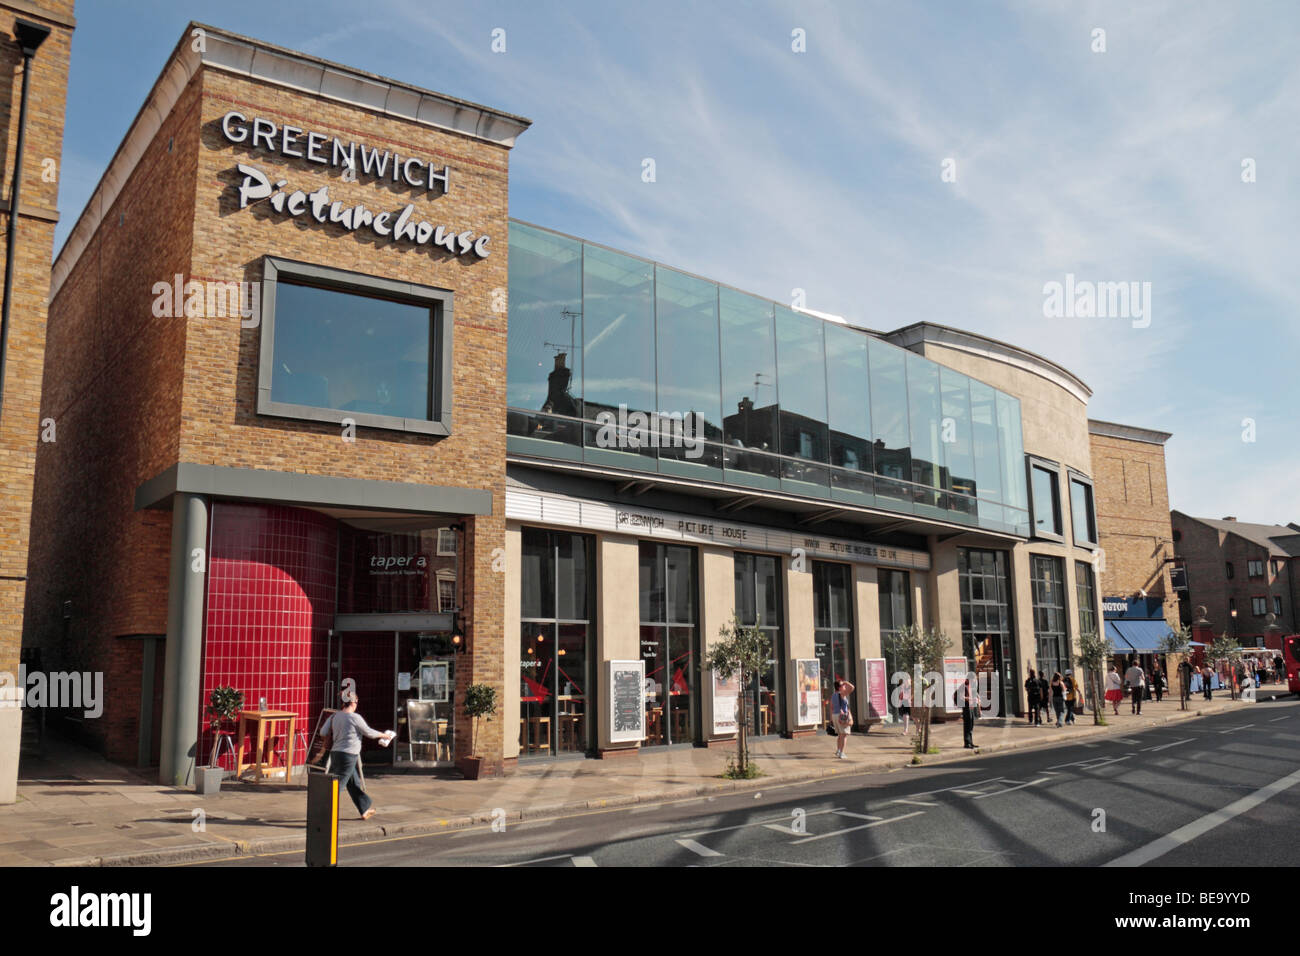 The Greenwich Picturehouse cinema on Greenwich High Road, London, UK. - Stock Image